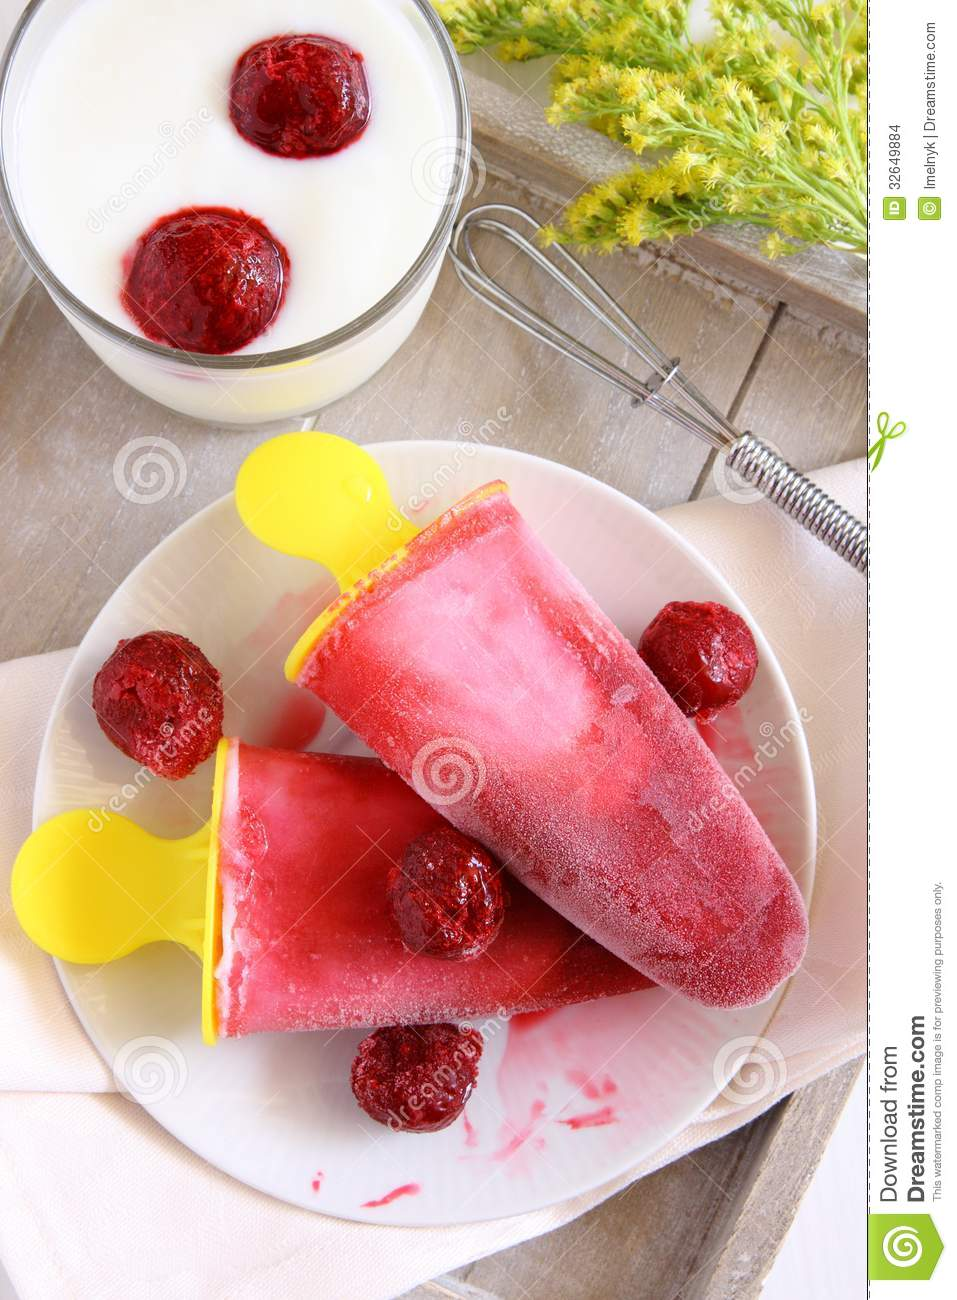 Homemade Cherry Ice Cream Popsicle With Yogurt Stock Images - Image ...